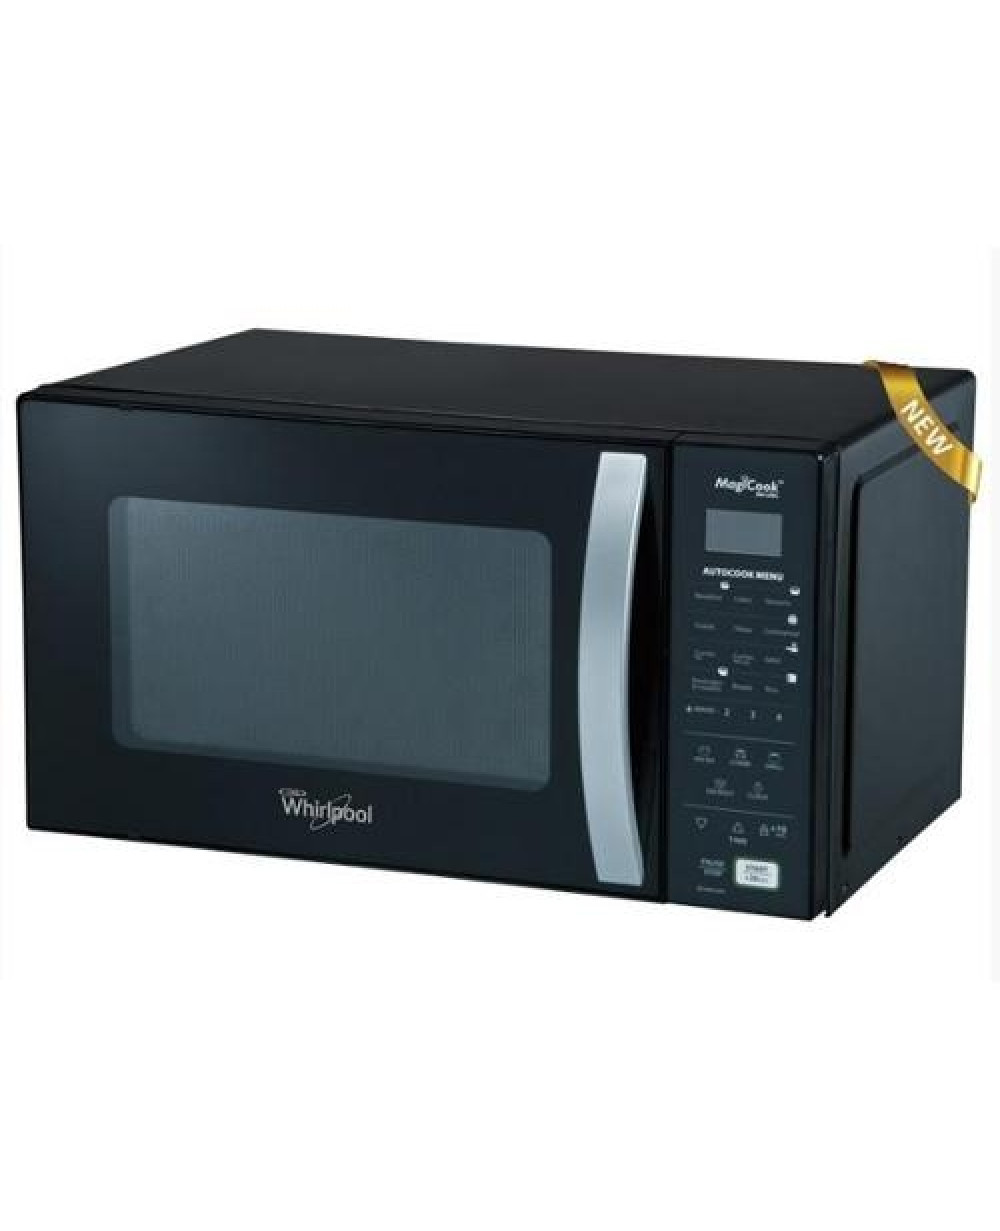 whirlpool magicook 20bg wg 20l grill microwave oven